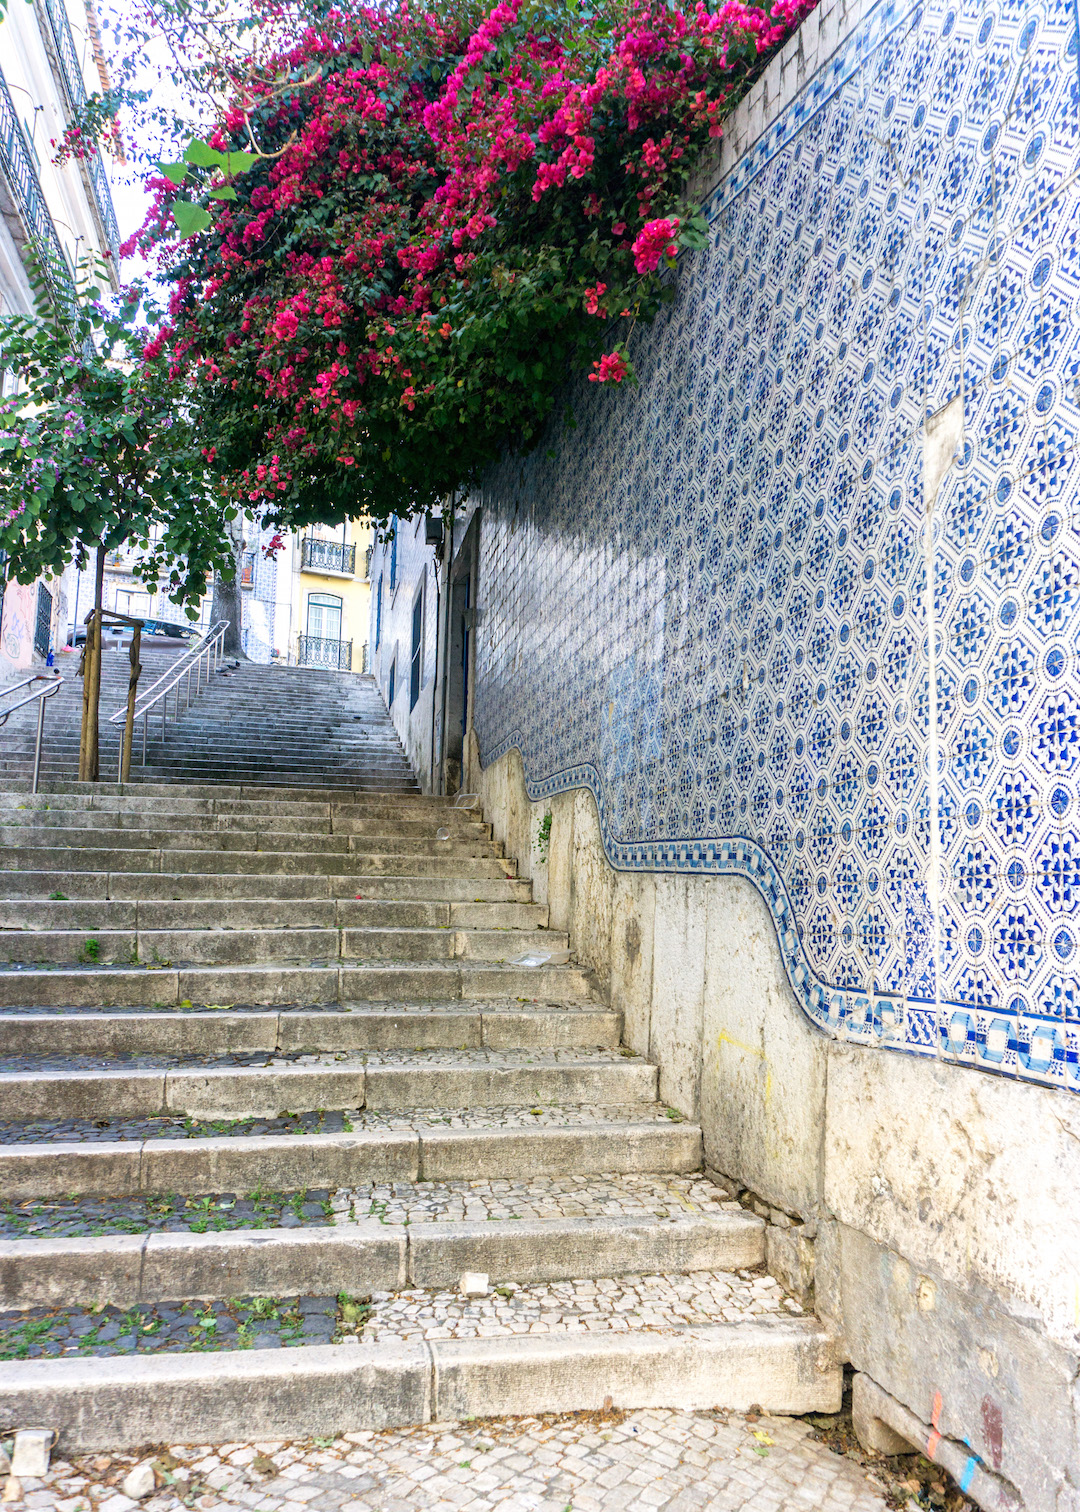 Tiled walls in Lisbon